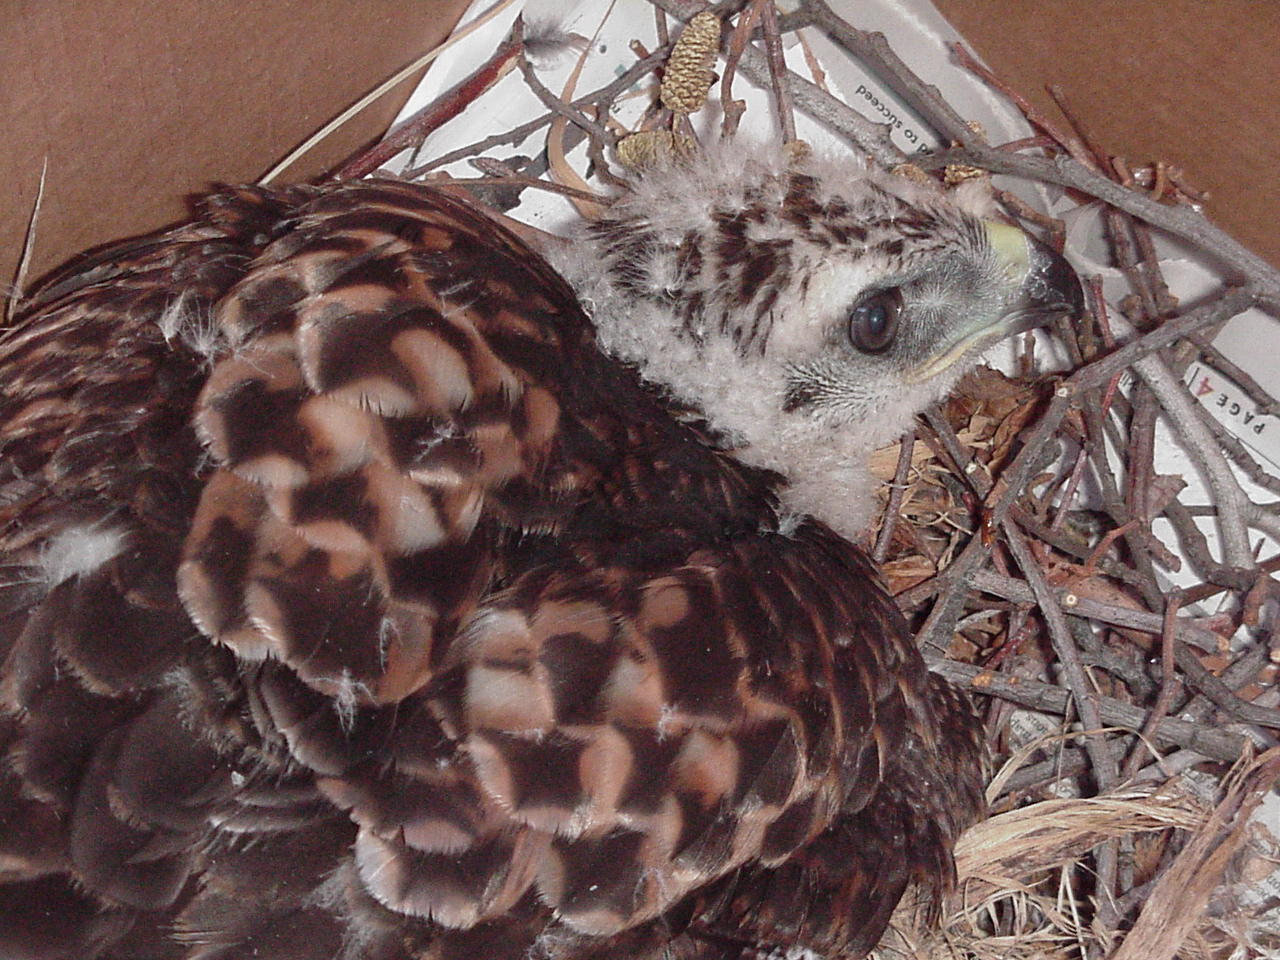 May 1, 2002: One of the two adolescent red-tailed hawks that were gently retrieved when their nest was blown to the ground during a high wind storm.  They were a few weeks away from being able to fly on their own, so they were taken to Ojai Raptor Center where they were nurtured, taught how to hunt, then released into the wild. For days on end following the incident the adults hung around the tree,  crying and looking for their babies.  I wish I could have been able to tell them their babies were safe and in excellent care.  www.ojairaptorcenter.org